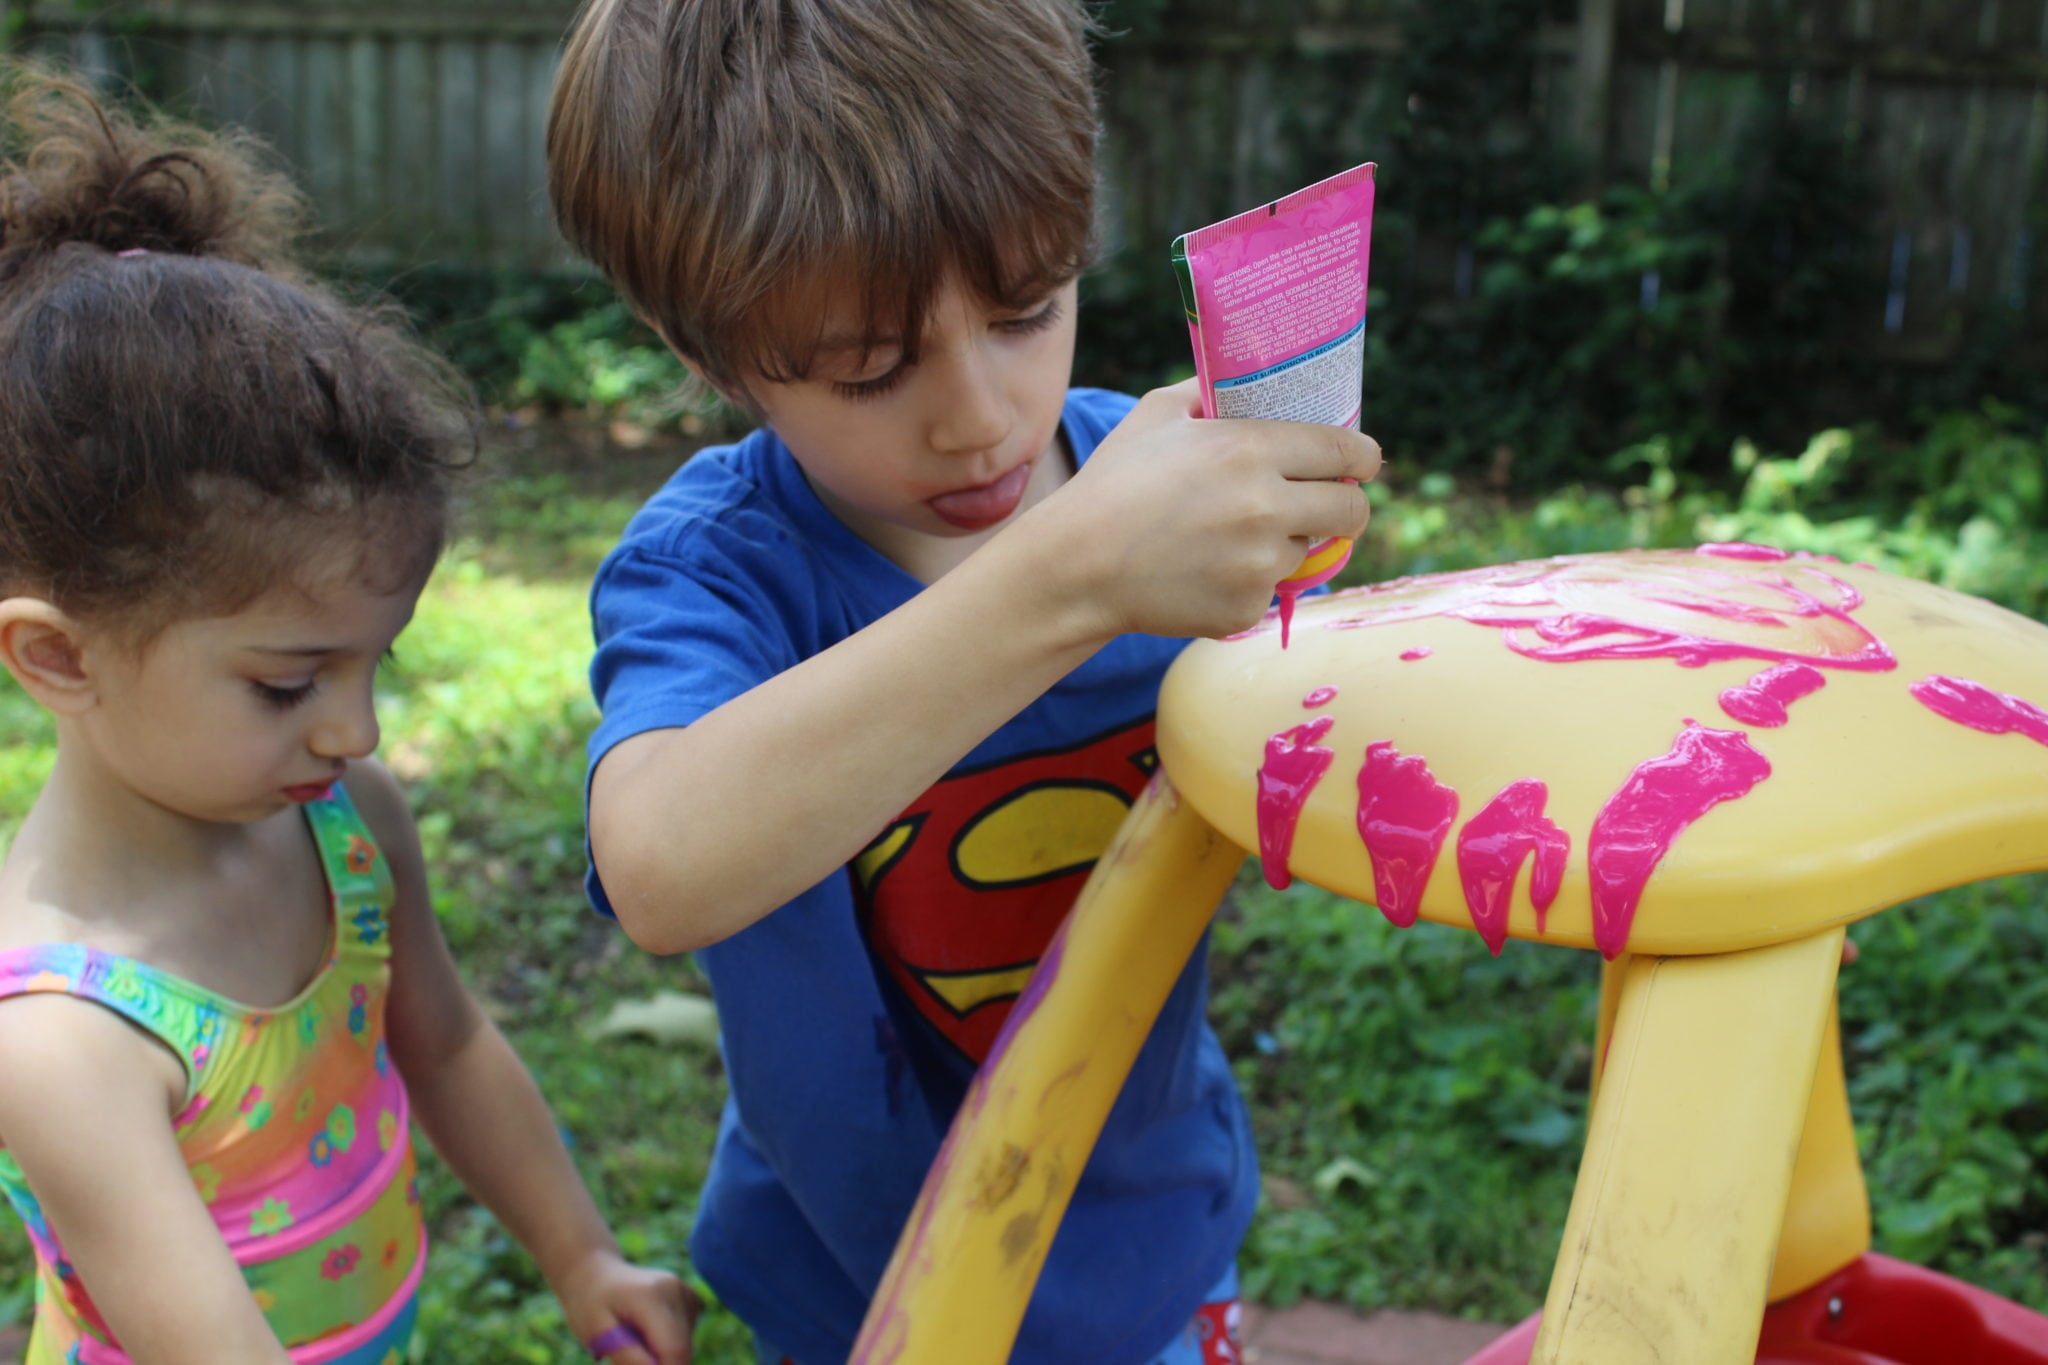 blonde toddler in blue superman shirt sticking his tongue out as he puts pink bath paint on toy car